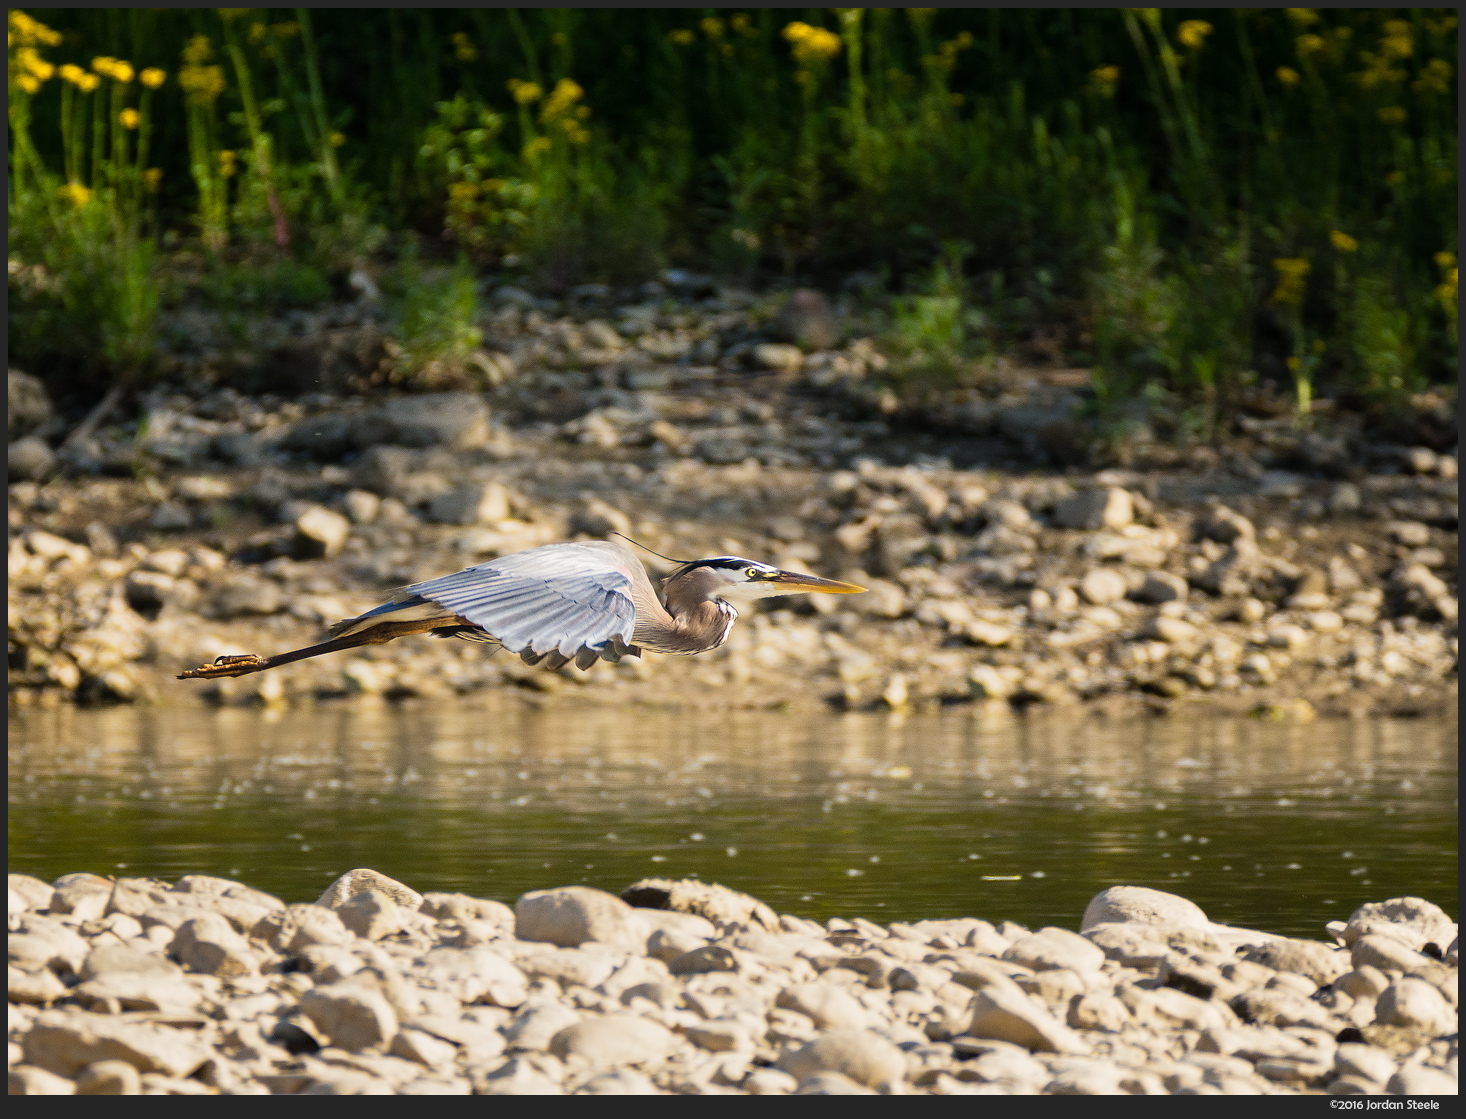 Great Blue Heron in Flight - Olympus OM-D E-M10 Mark II with Panasonic Leica 100-400mm f/4-6.3 @ 400mm, f/6.3